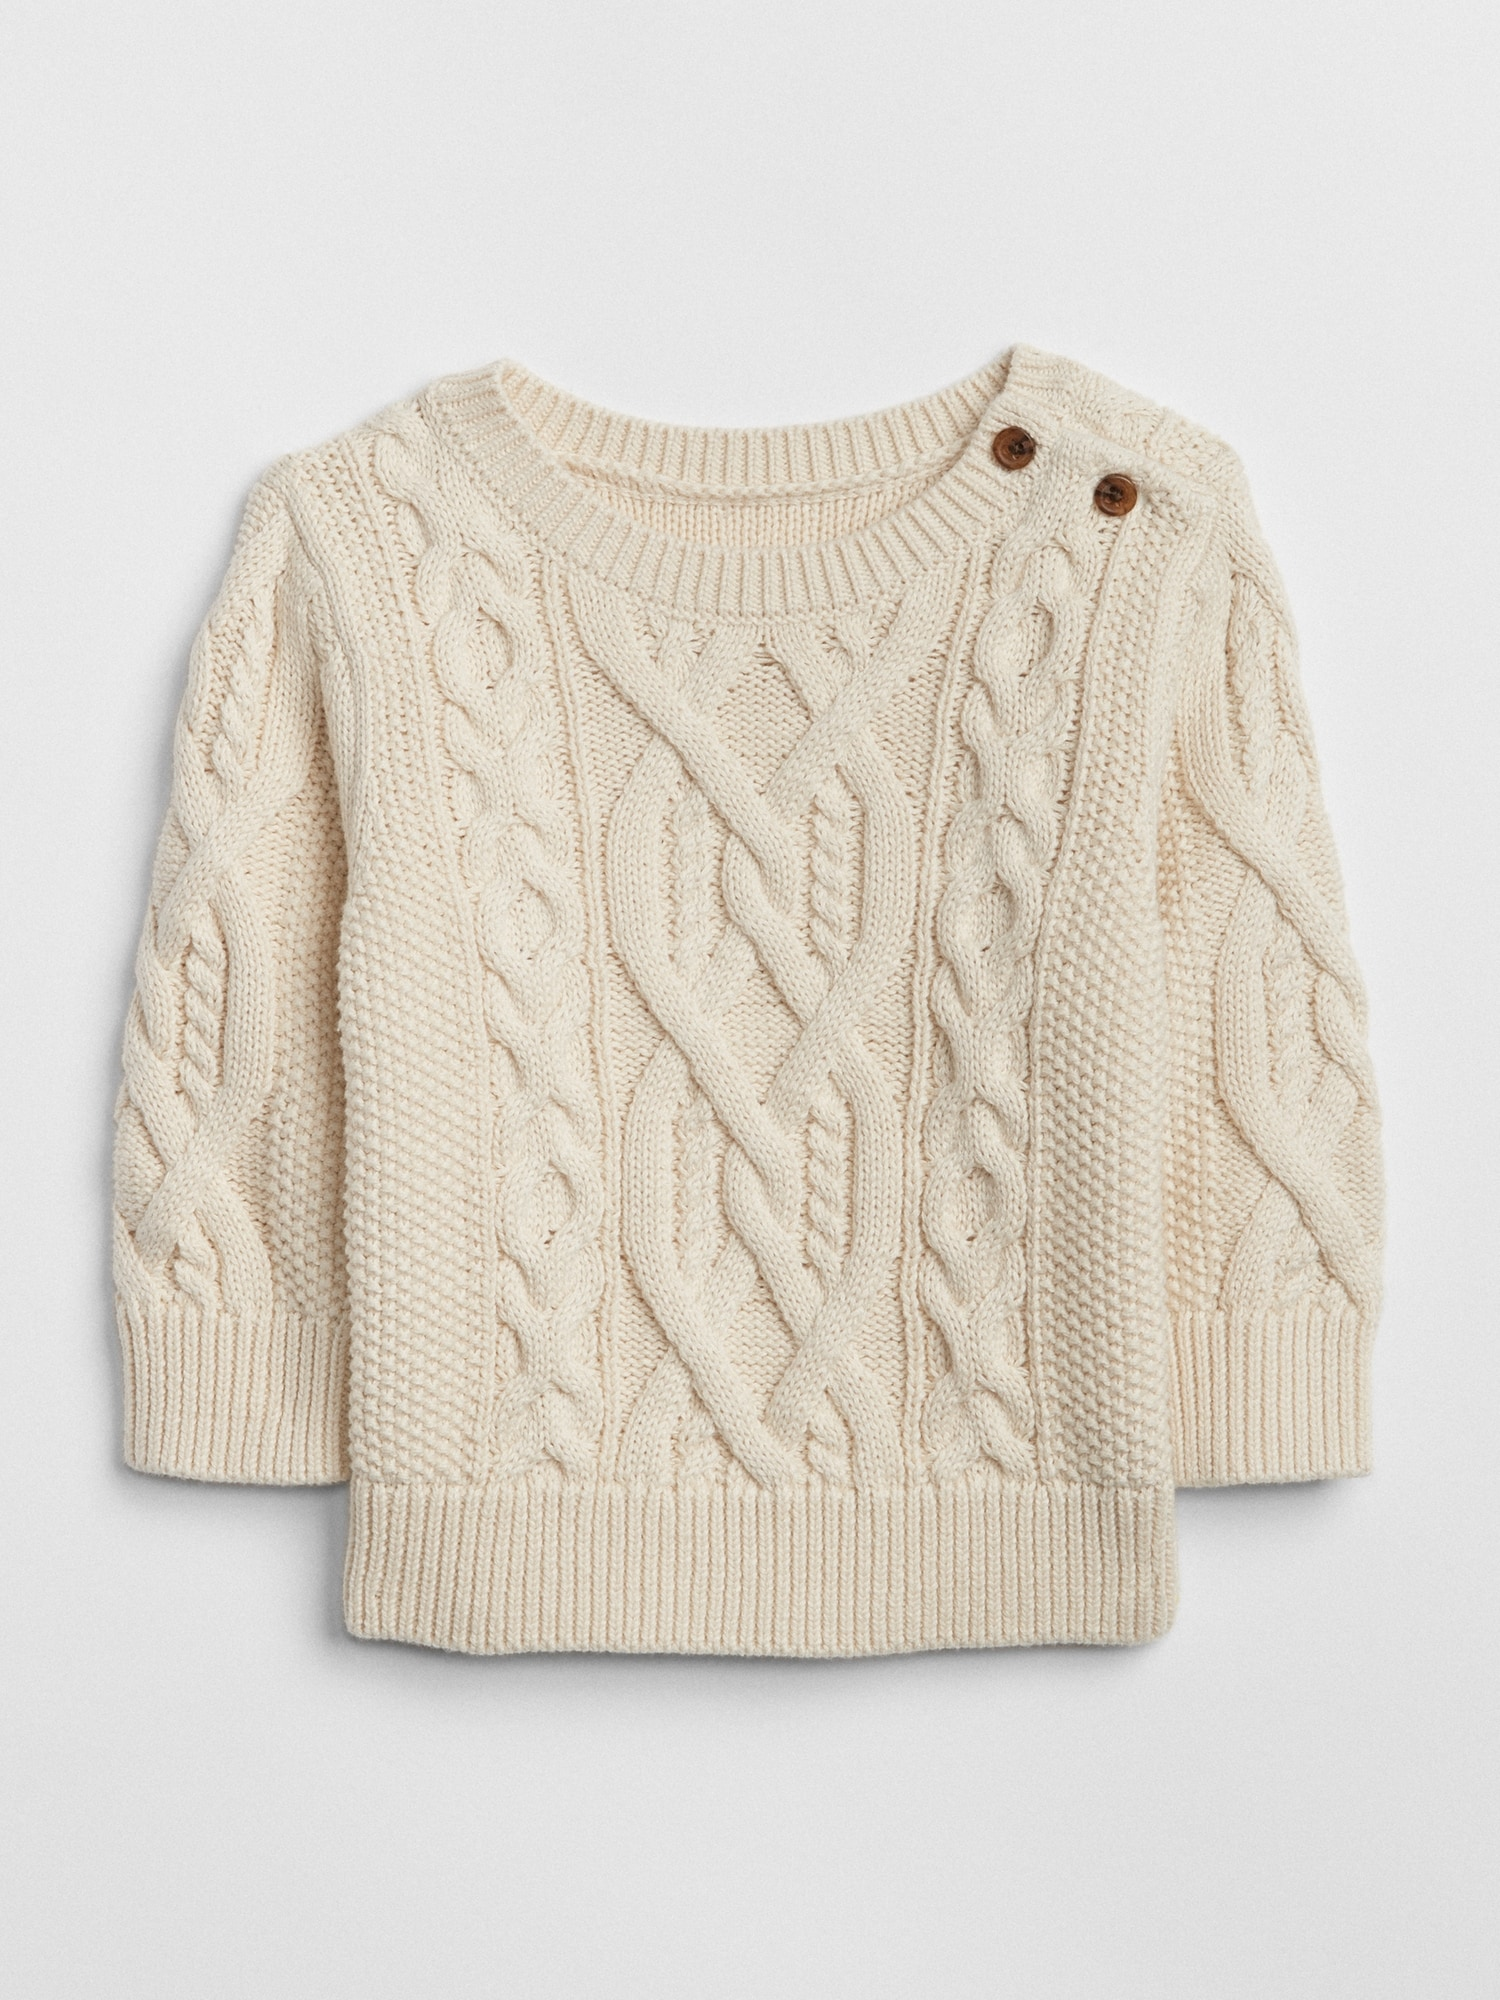 Casual and with style through the winter in a cable knit sweater